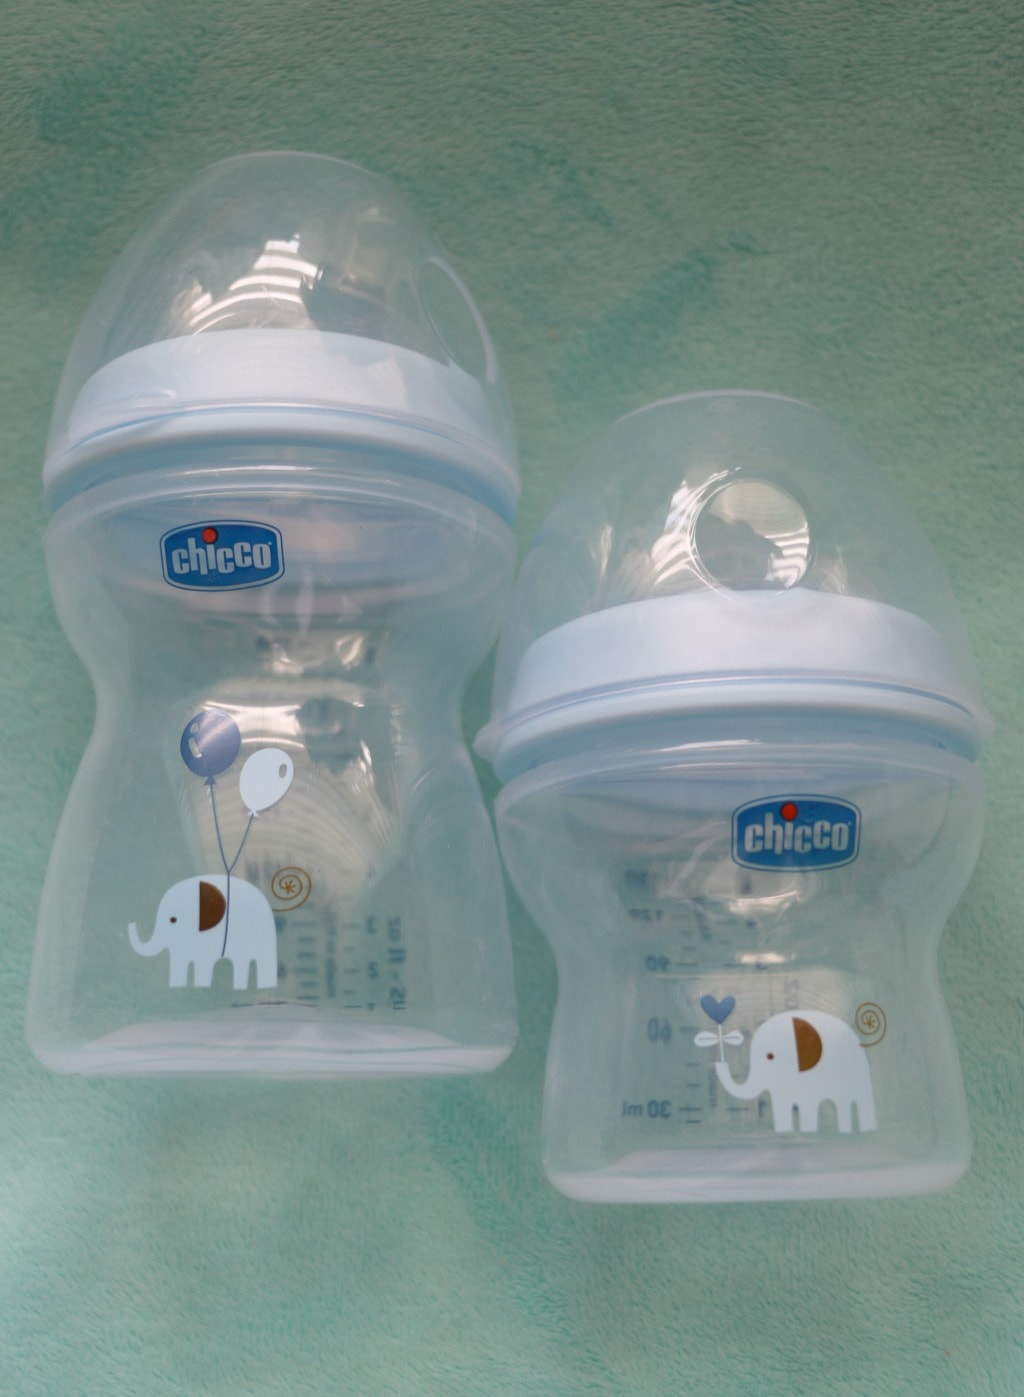 chicco bottles